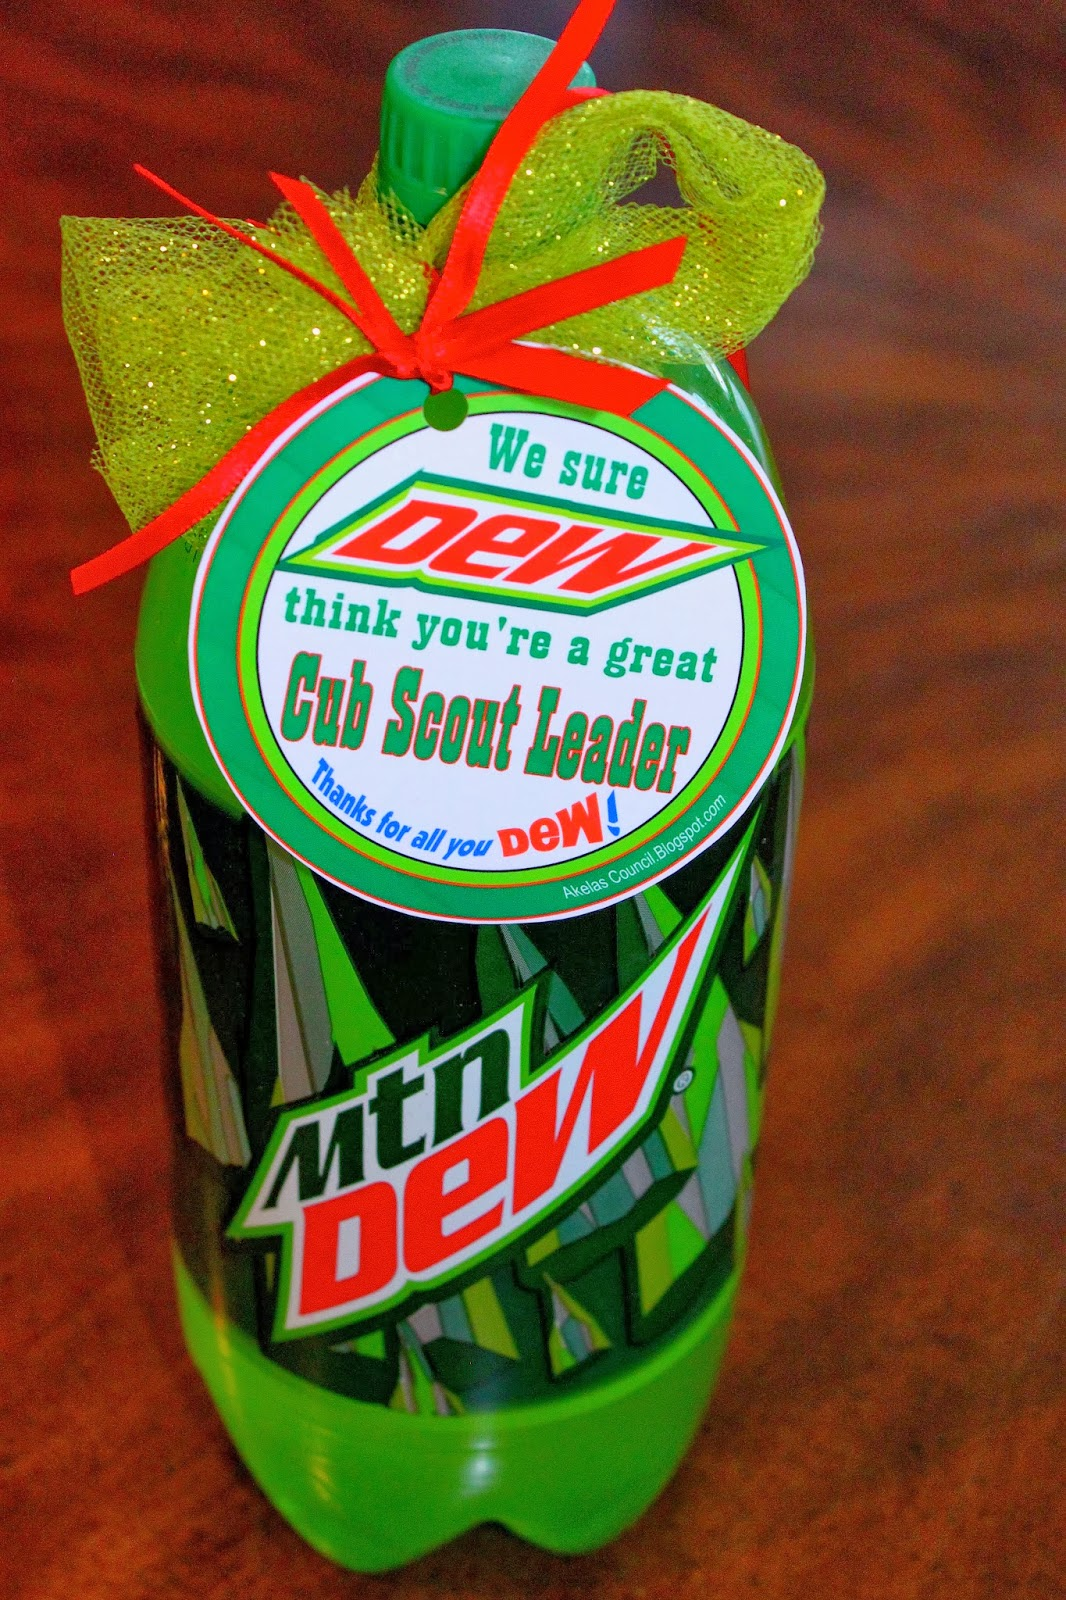 "... DEW think you're Great. Thanks for all you DEW!"" - Perfect for the"